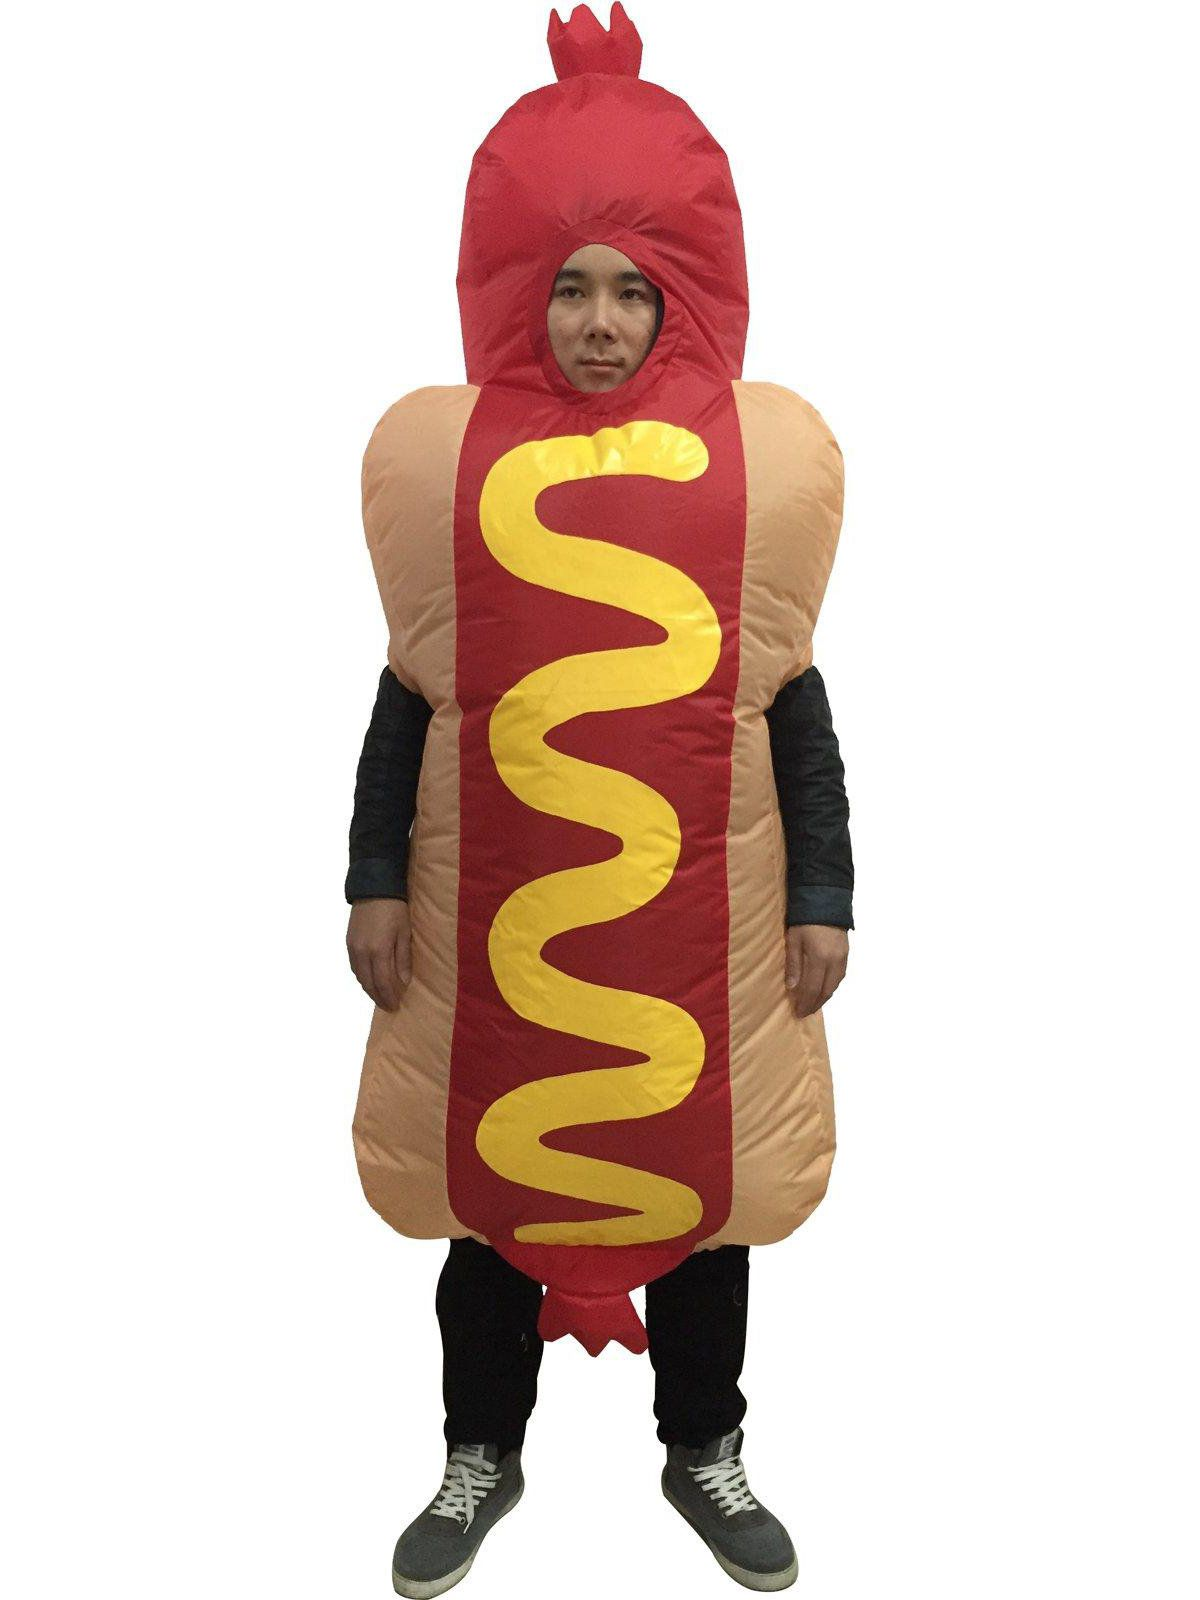 Adult Hotdog Inflatable Costume For Adults  sc 1 st  Wholesale Halloween Costumes & Adult Hotdog Inflatable Costume For Adults | Wholesale Halloween ...